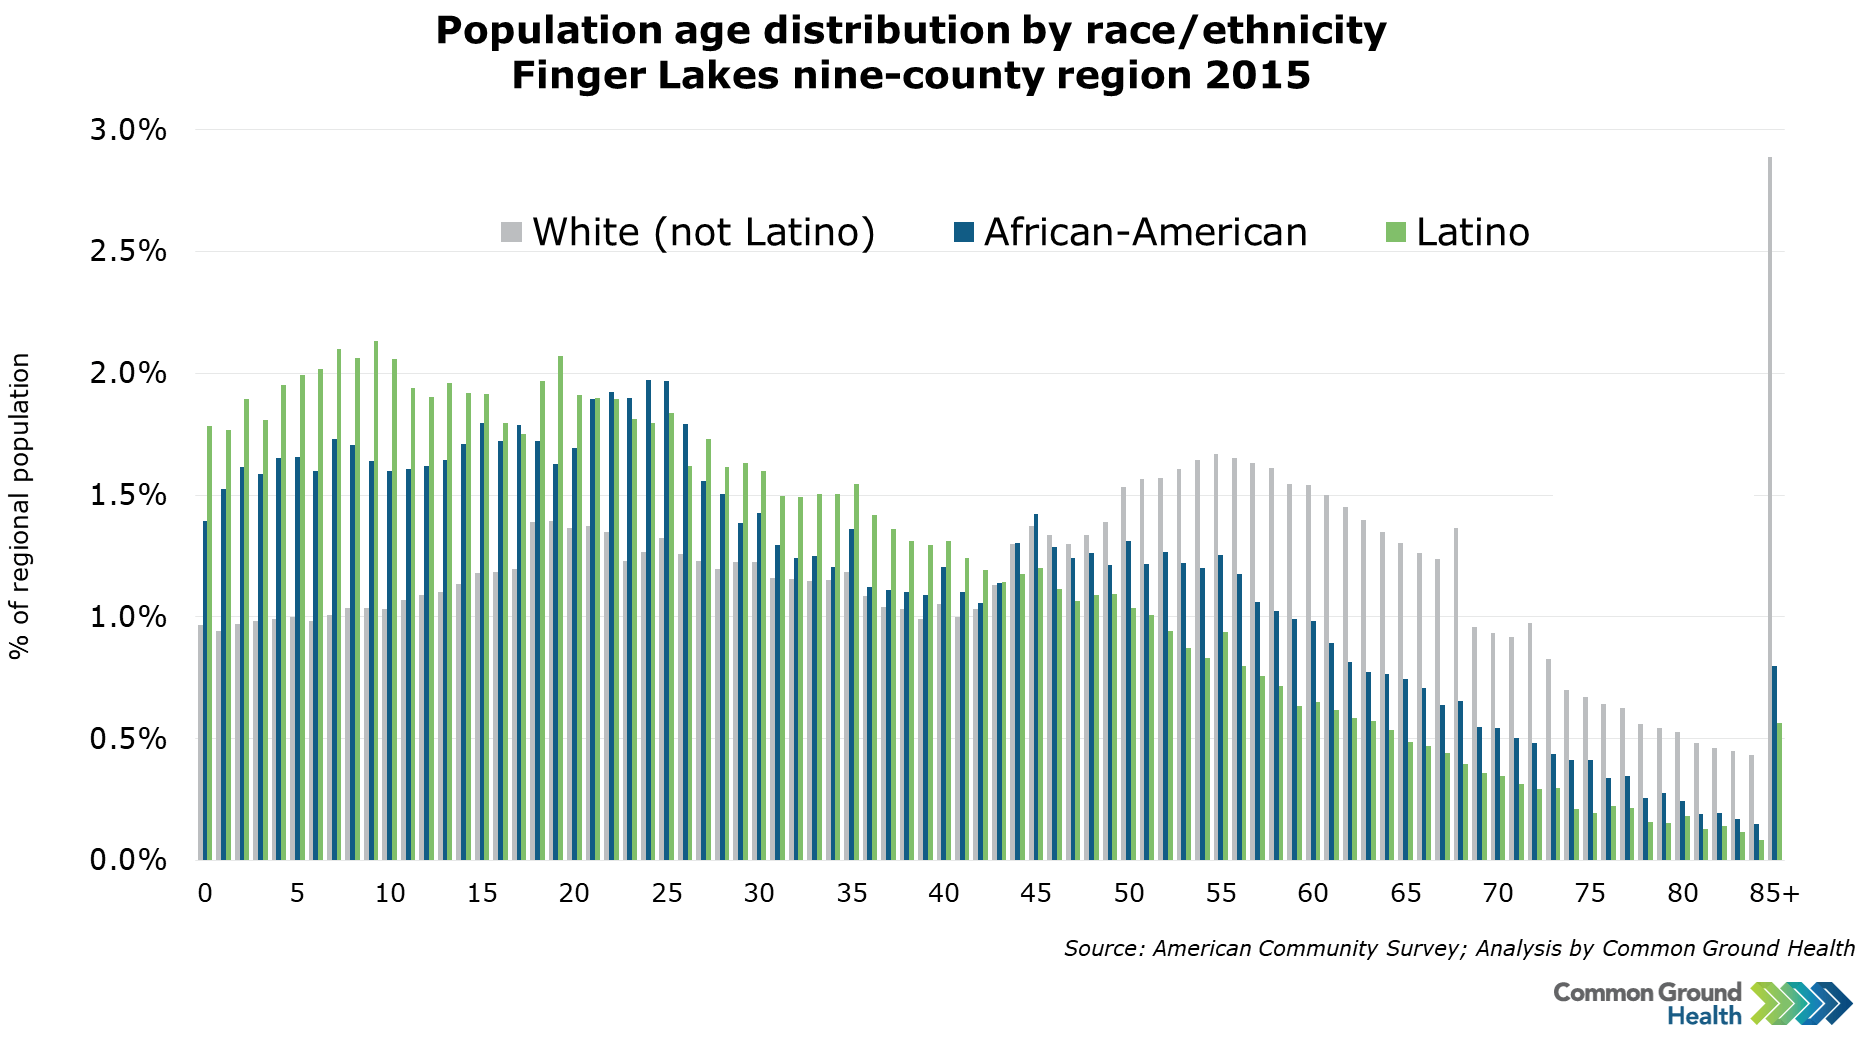 Population Age Distribution by Race/Ethnicity